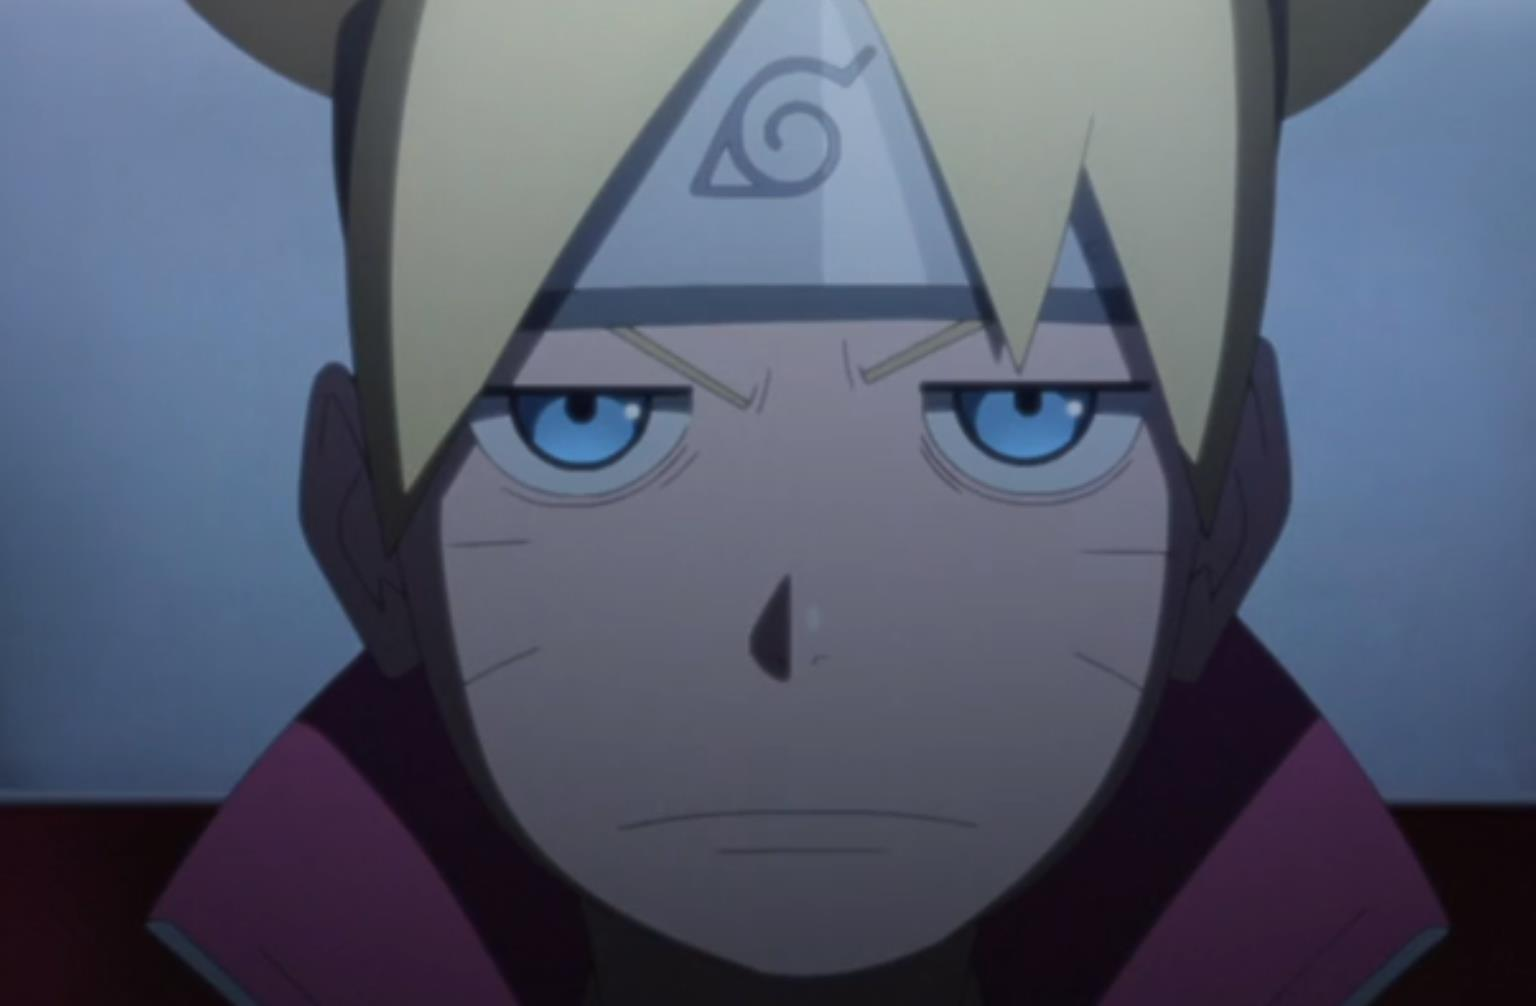 Play《[720p]BORUTO-ボルト- NARUTO NEXT GENERATIONS 116 192MB》